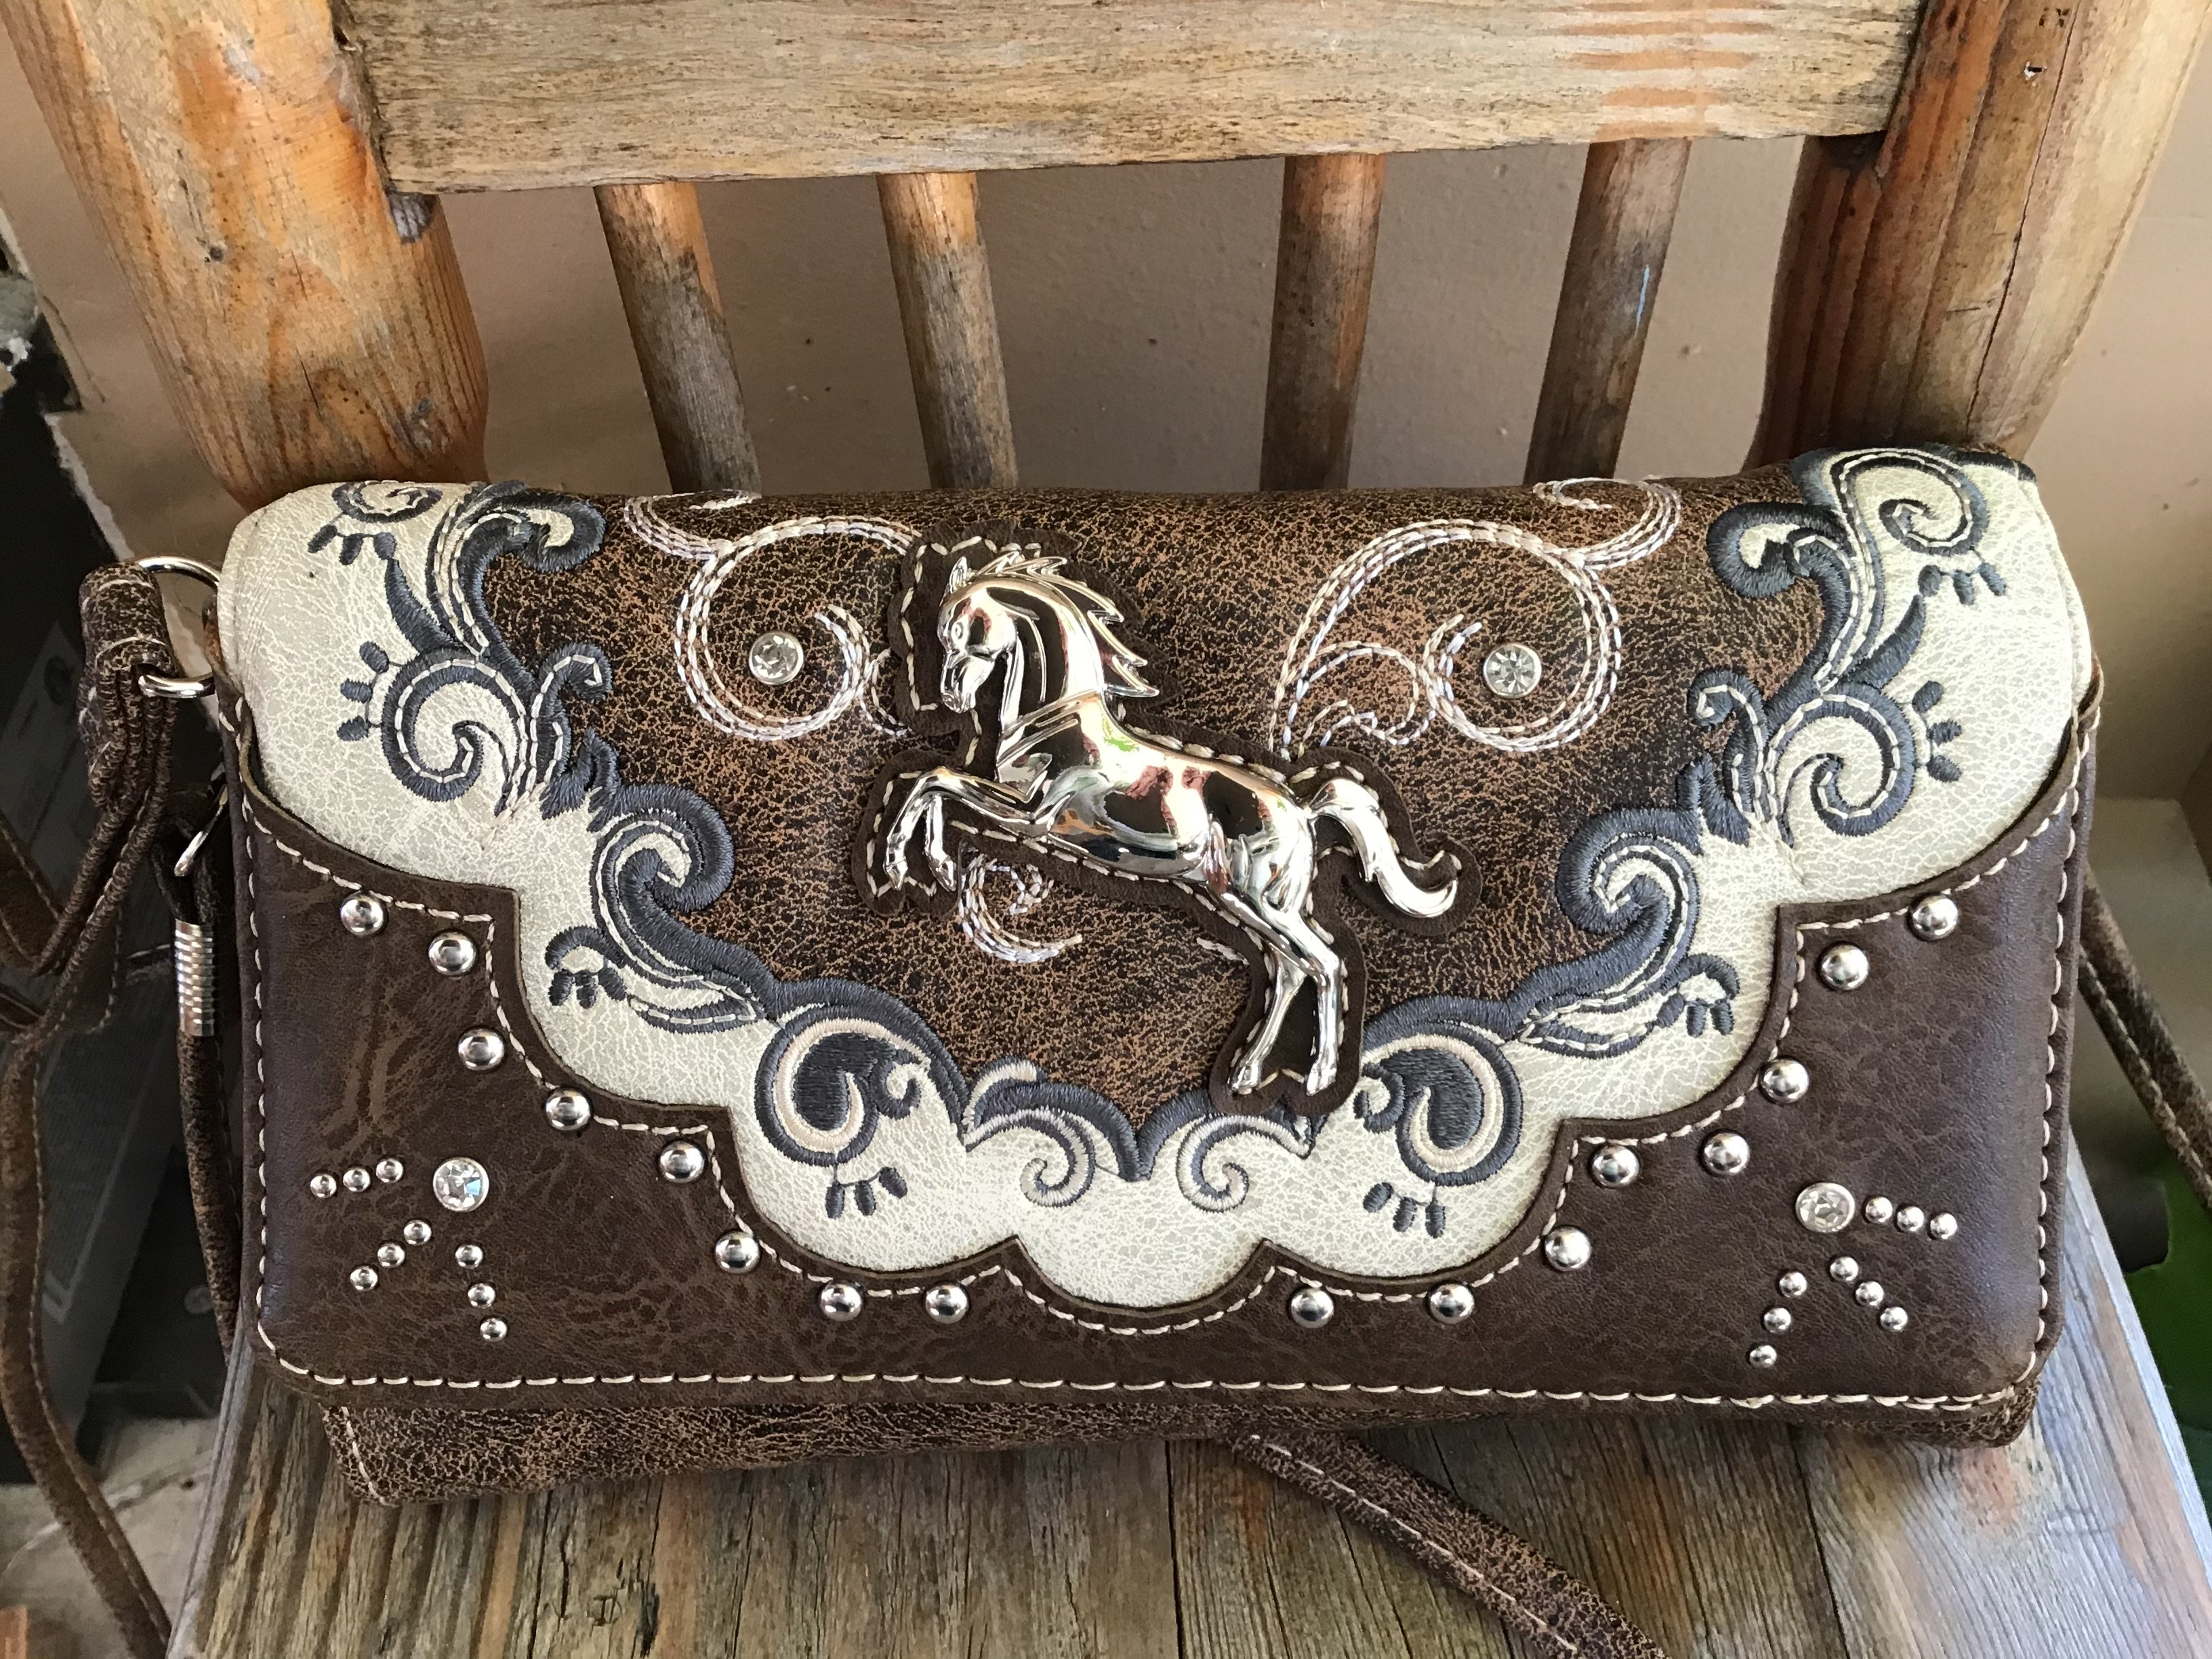 Western chocolate brown horse wallet Concho Embroidery Trifold Clutch Cross body bag purse